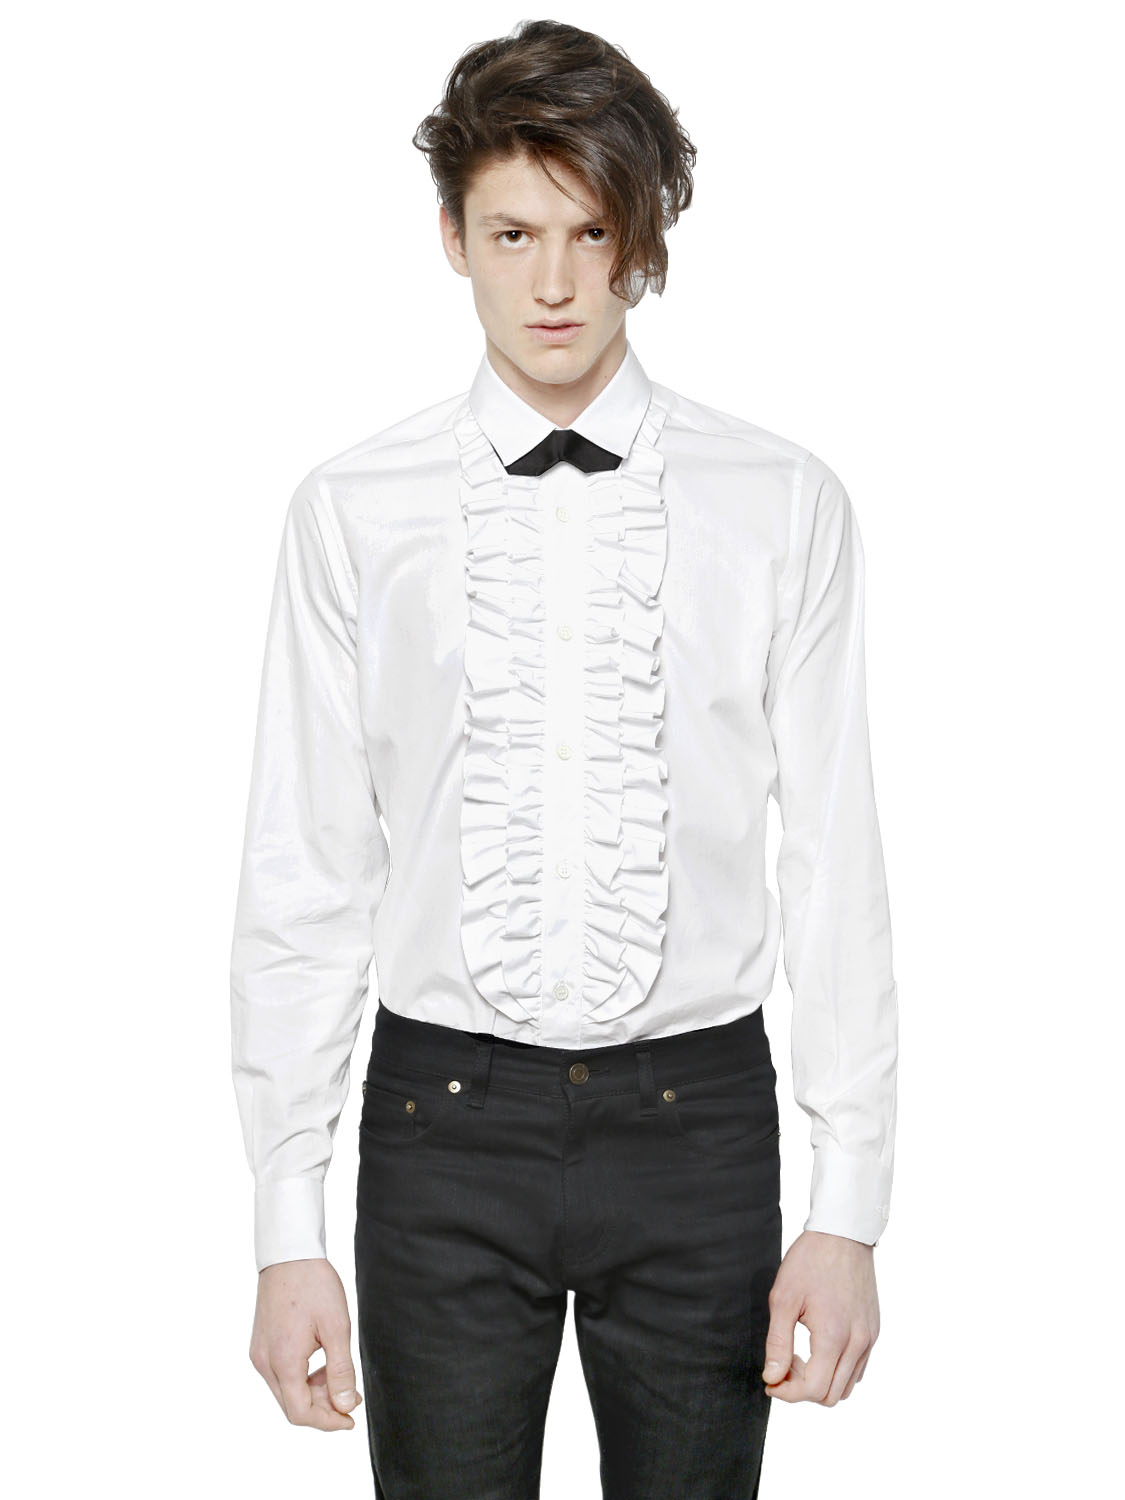 Saint laurent ruffle plastron cotton poplin shirt in white for Frilly shirts for men